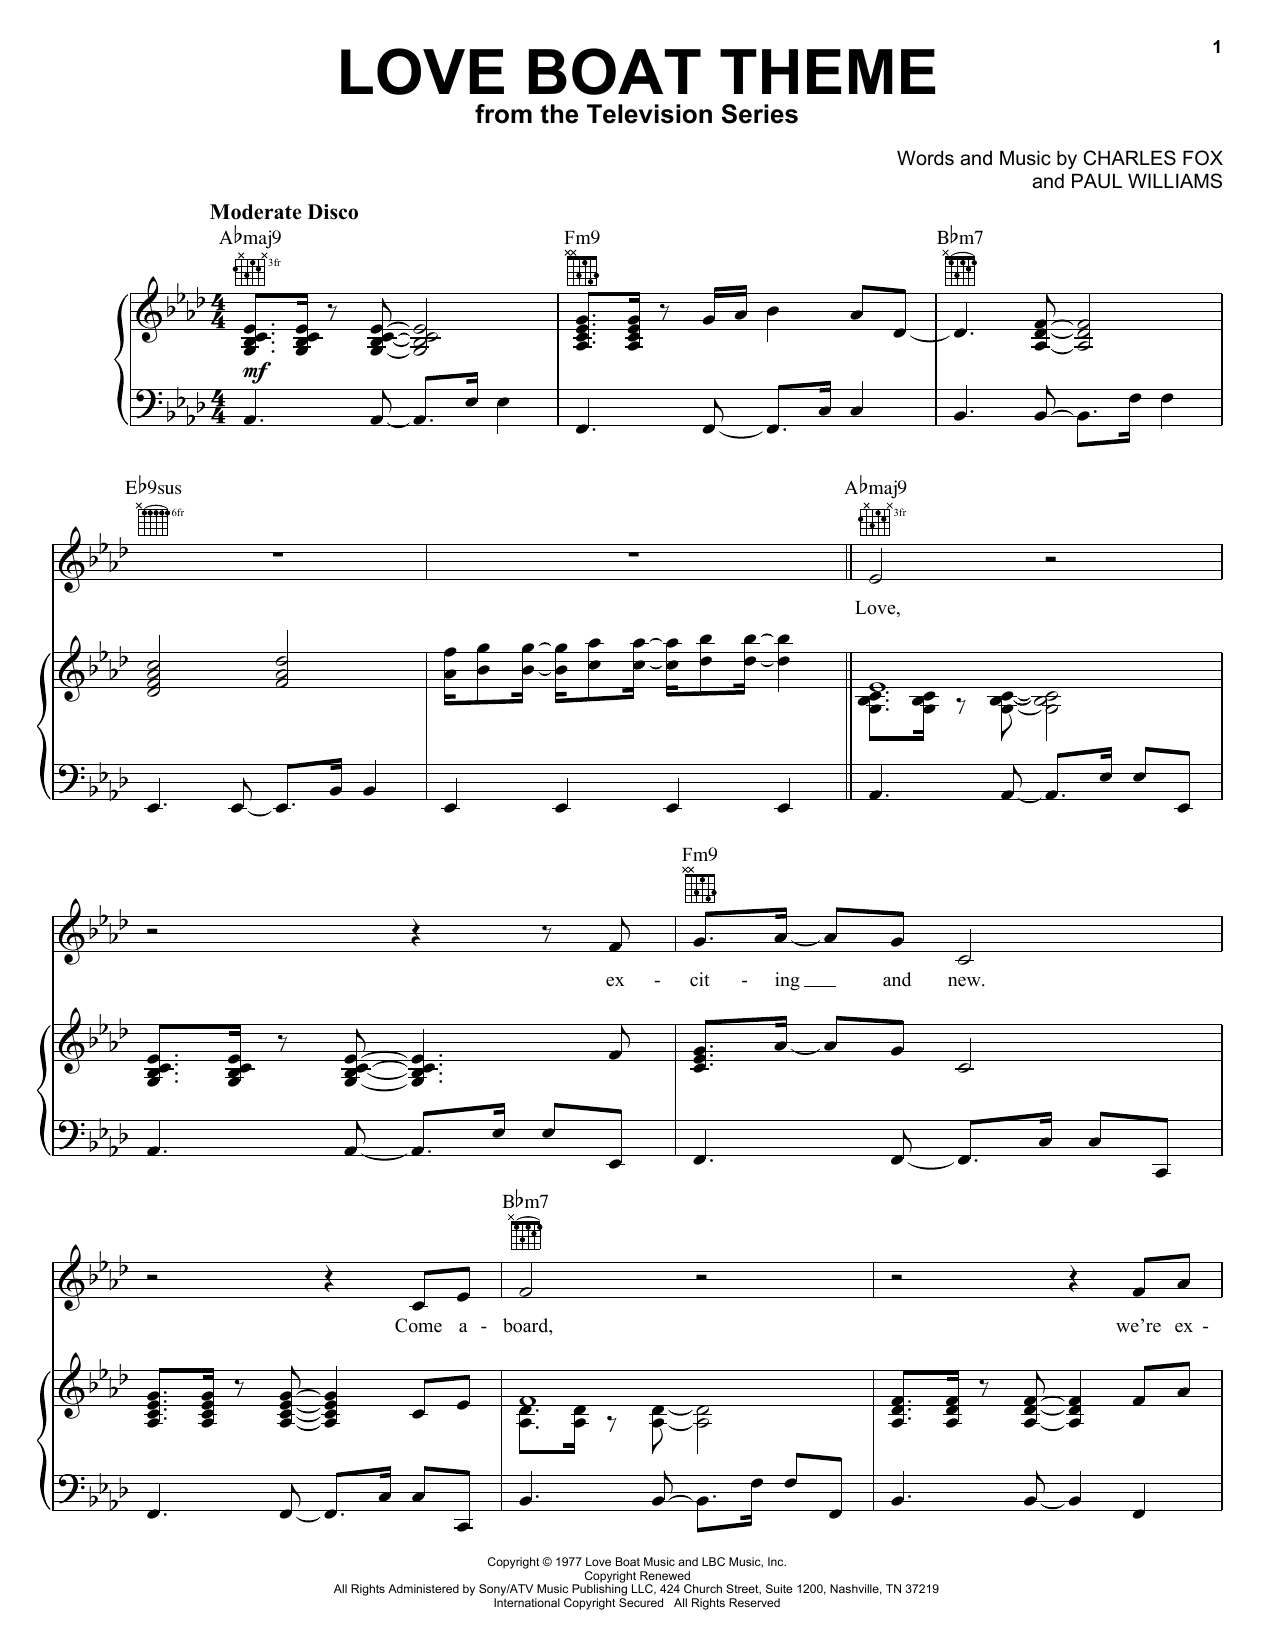 Charles Fox Love Boat Theme sheet music notes and chords. Download Printable PDF.